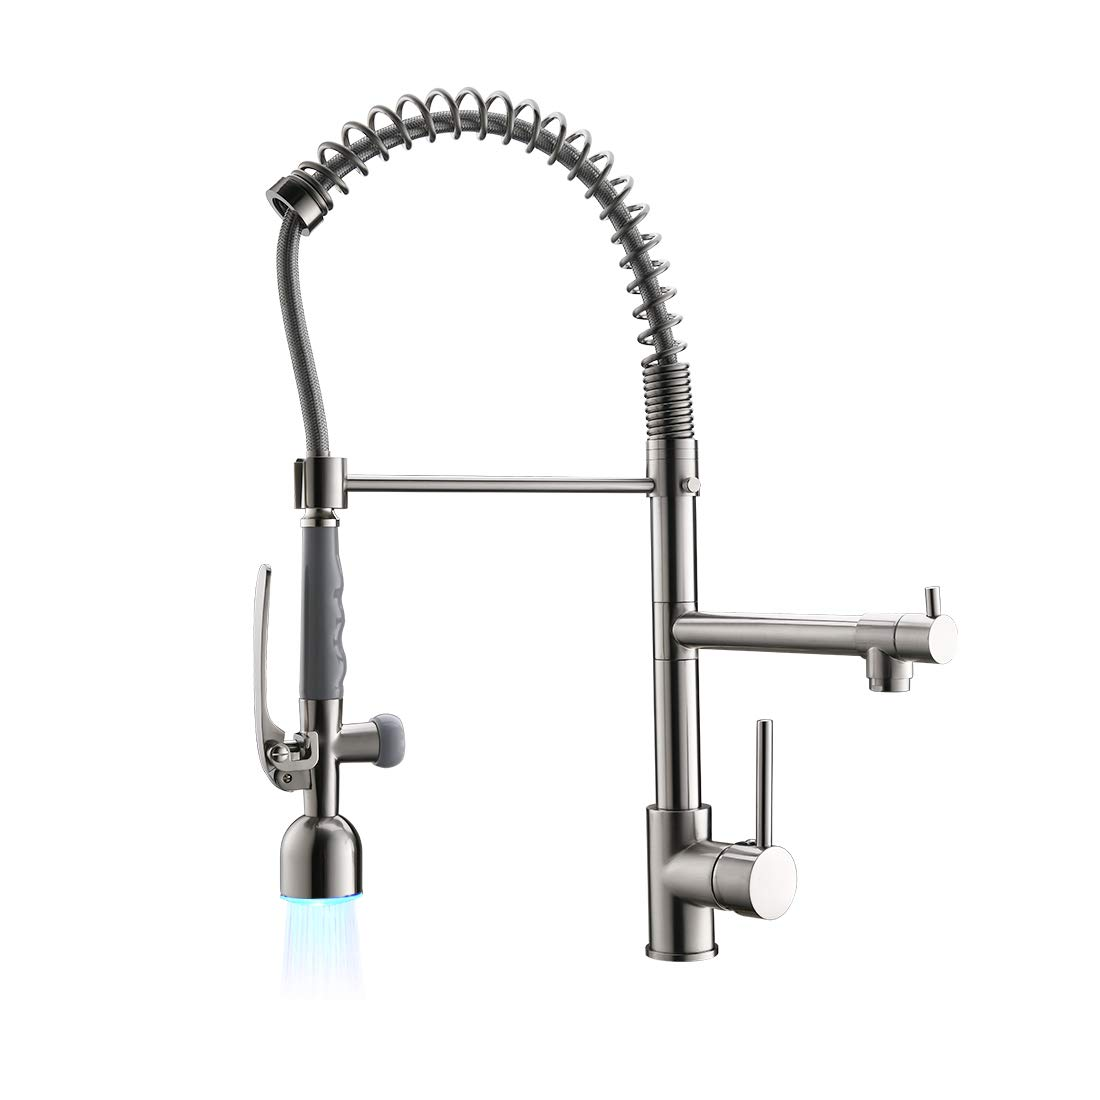 Fapully Commercial Single Handle Pull Down Sprayer Brushed Nickel Kitchen Faucet, Kitchen Sink Faucet with LED Light